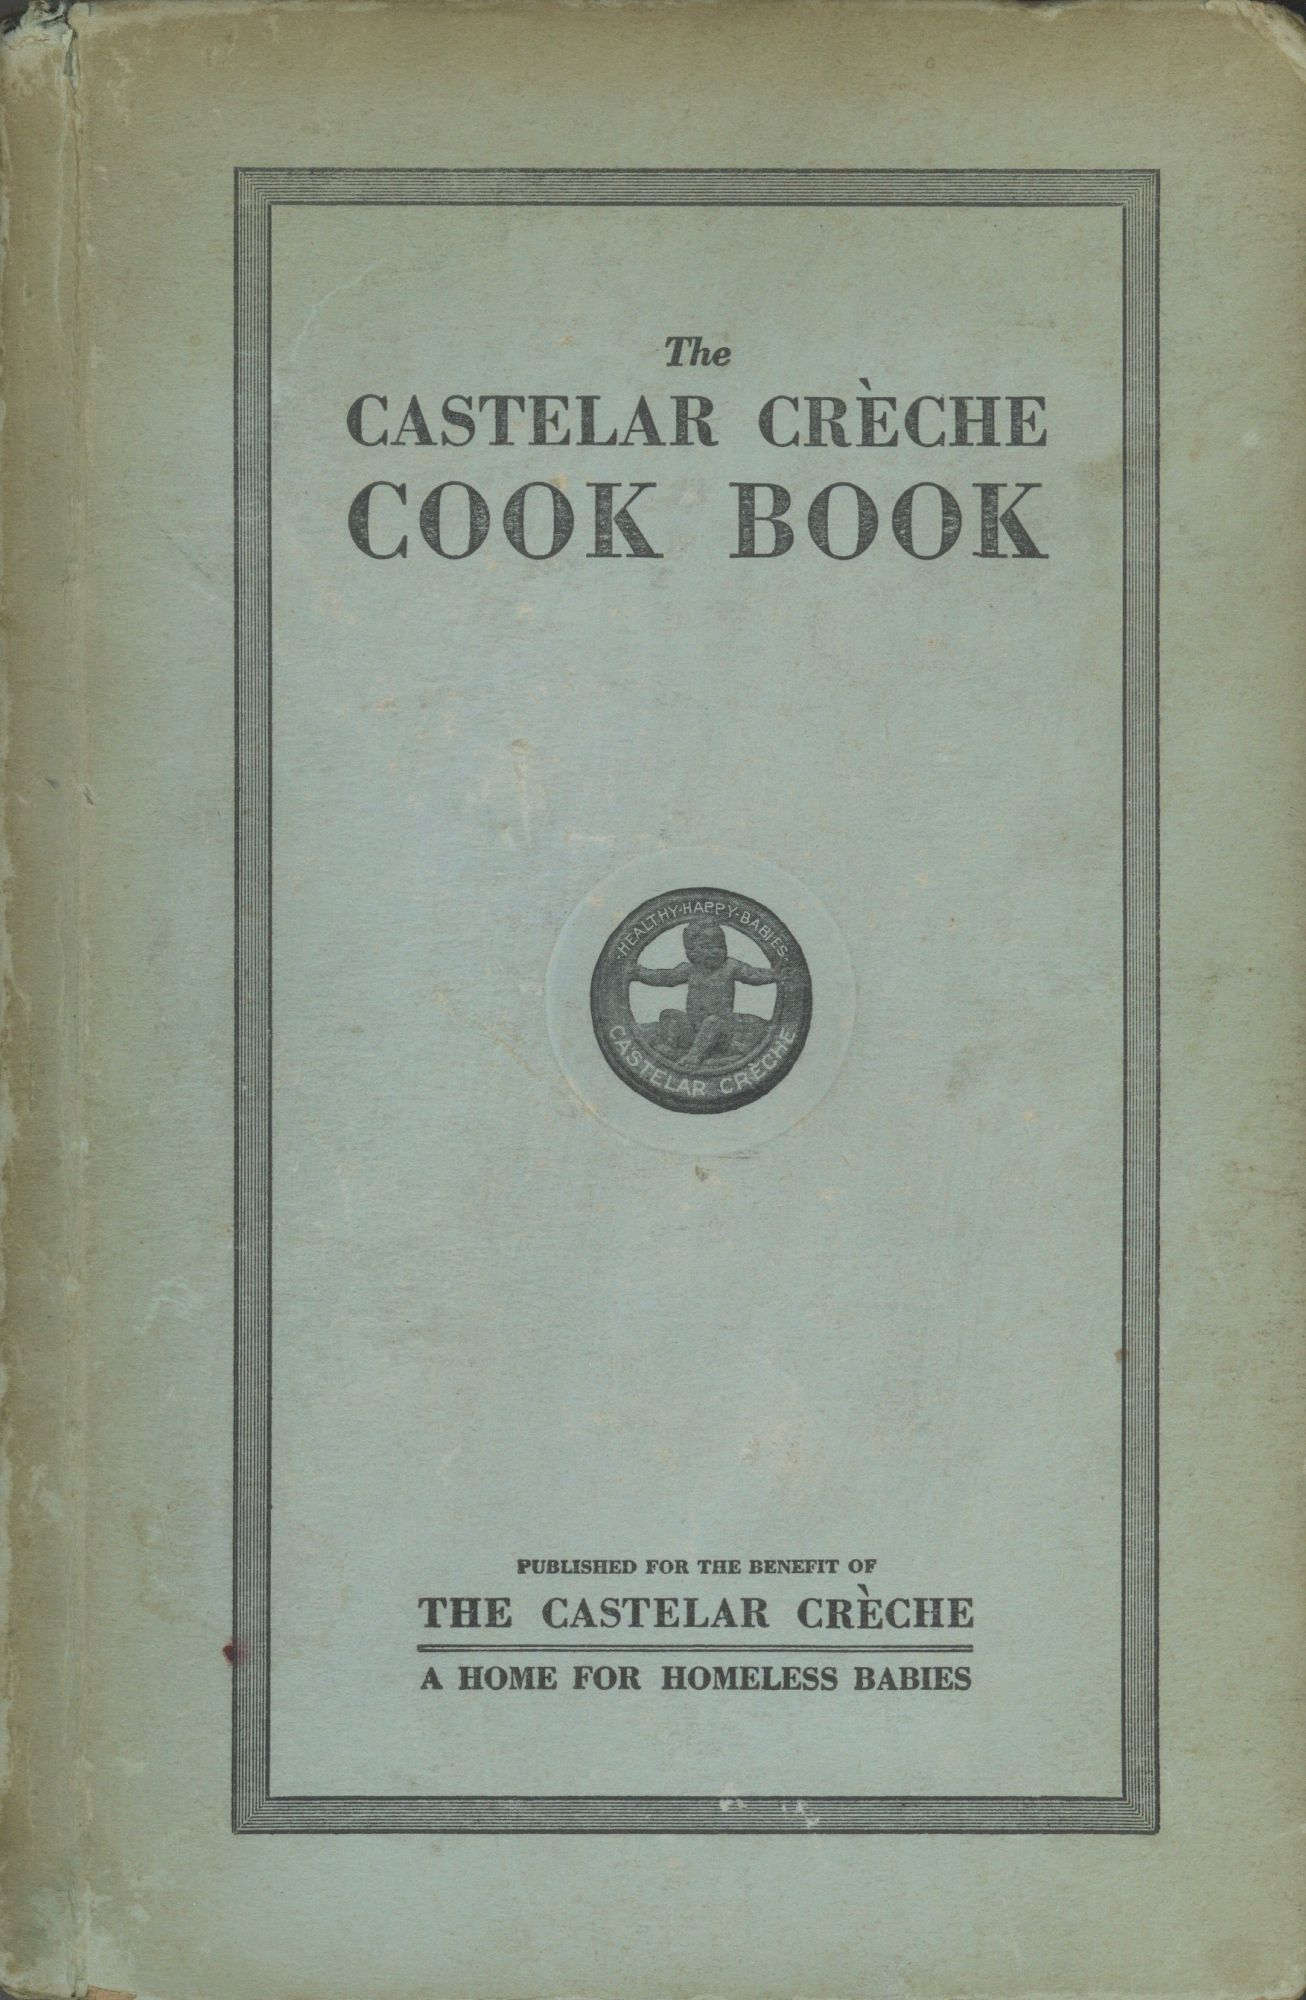 Castelar Crèche Cook Book. Edited and Compiled by The Board of Directors for the Benefit of The Castelar Crèche, A Home for Homeless Babies. Castelar Crèche . Board of Directors, Calif Los Angeles, Mary Agnes Connell.